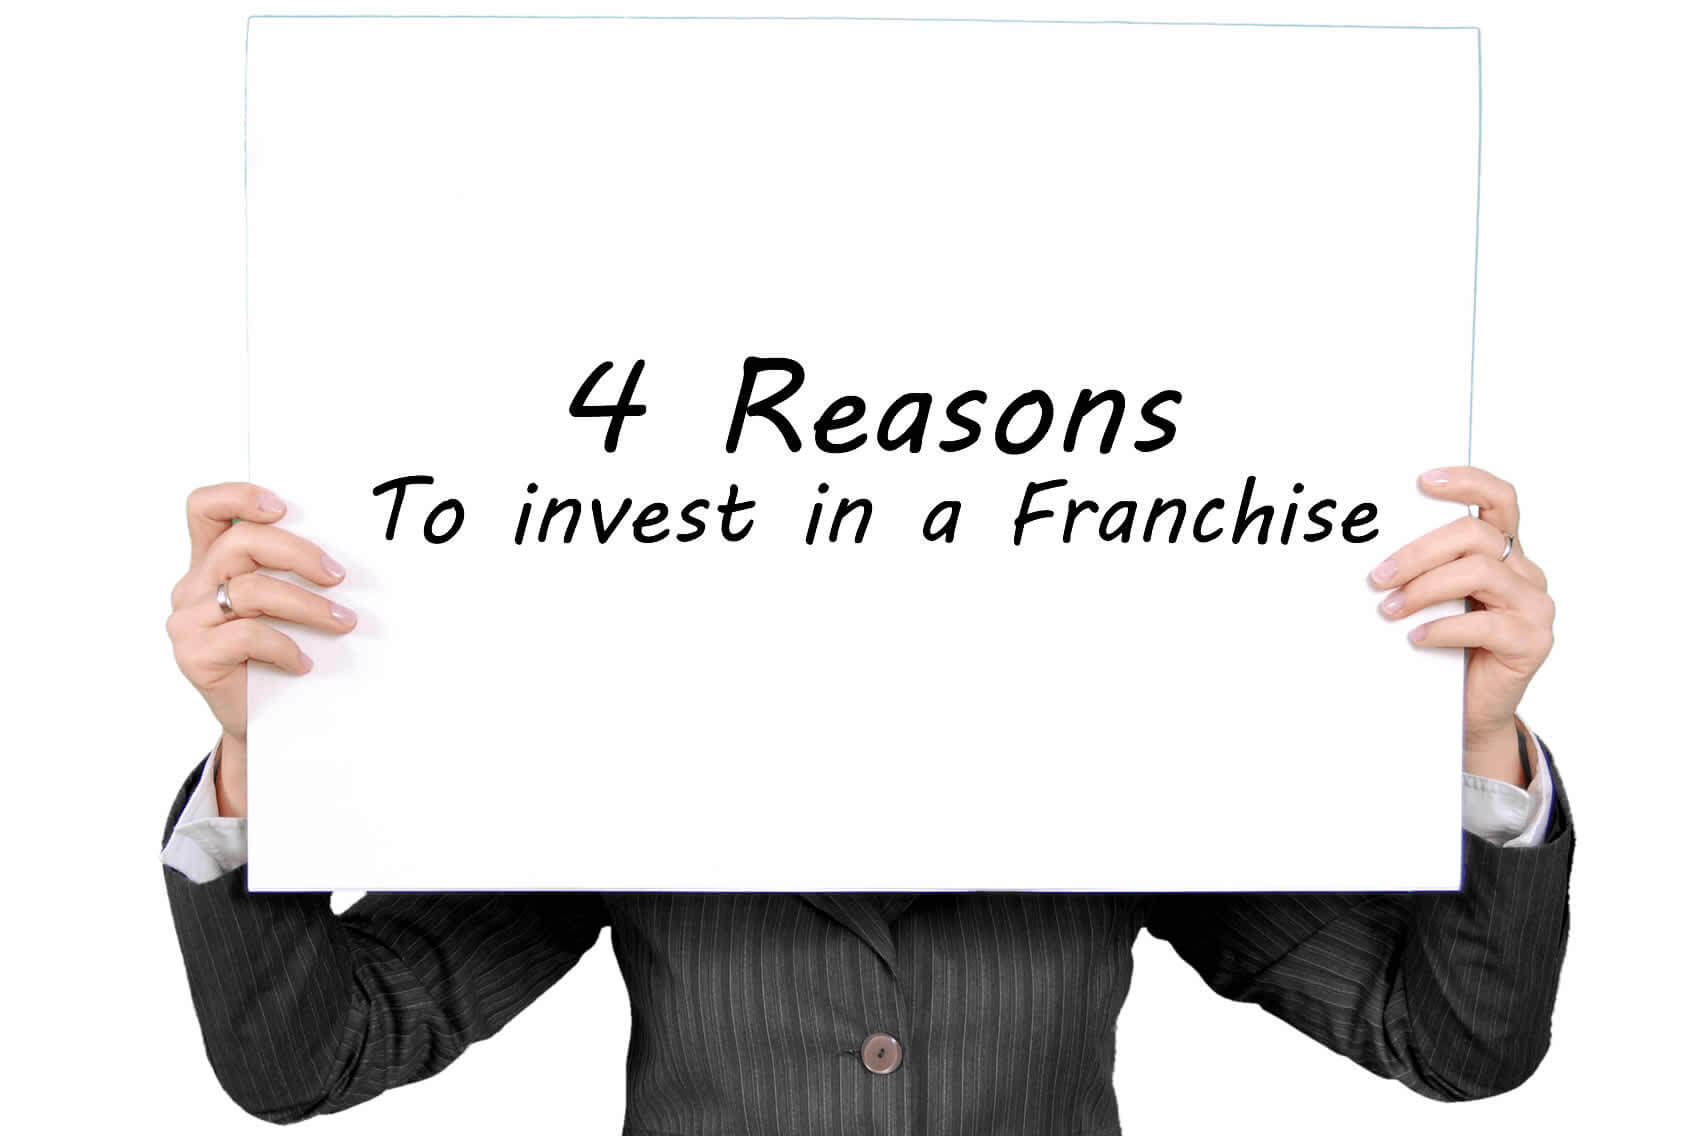 4 Reasons to Invest in a Franchise